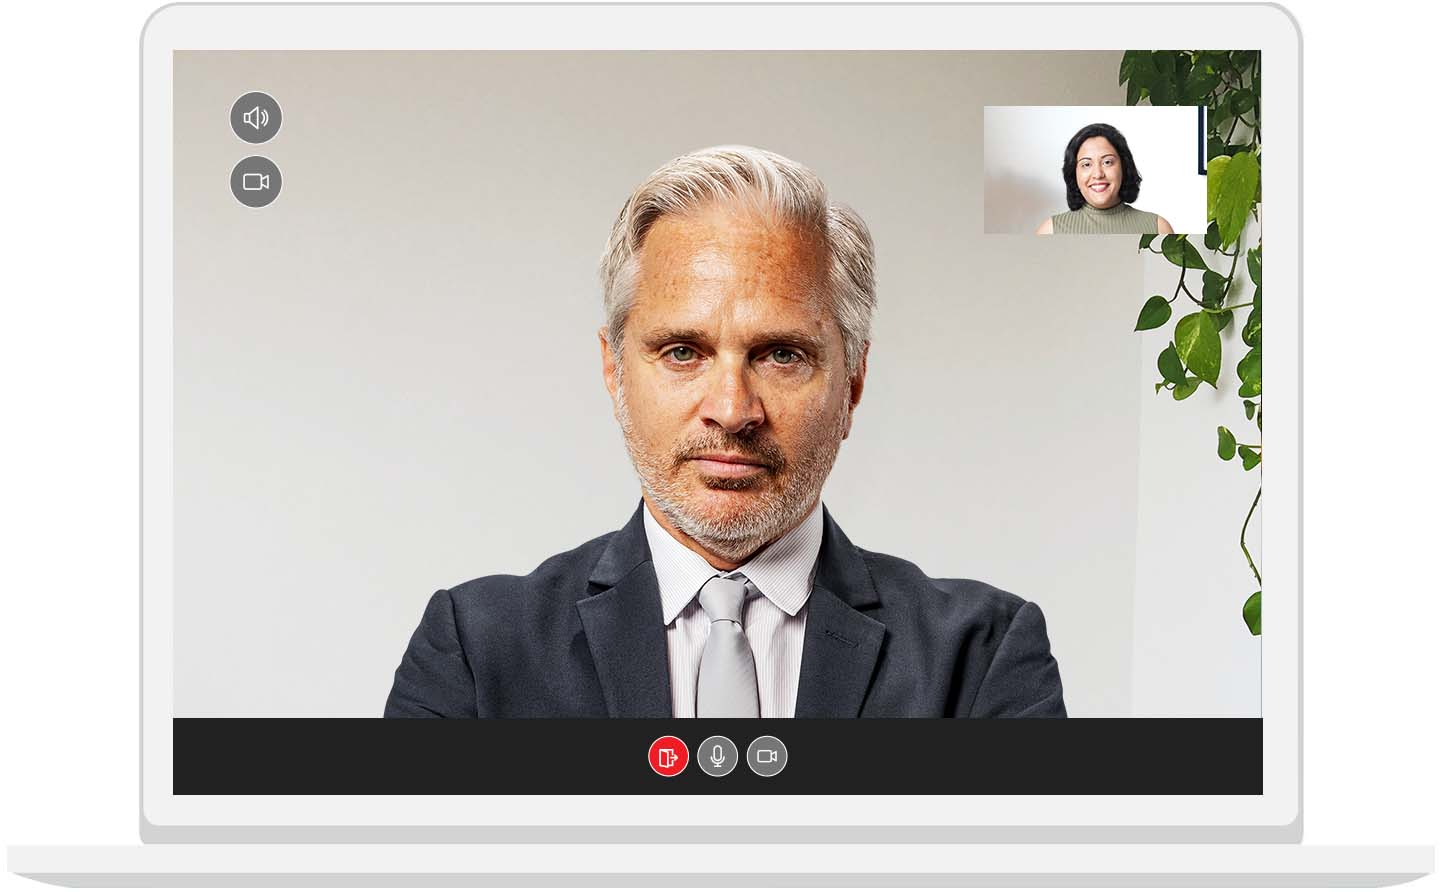 palicall-video-conf